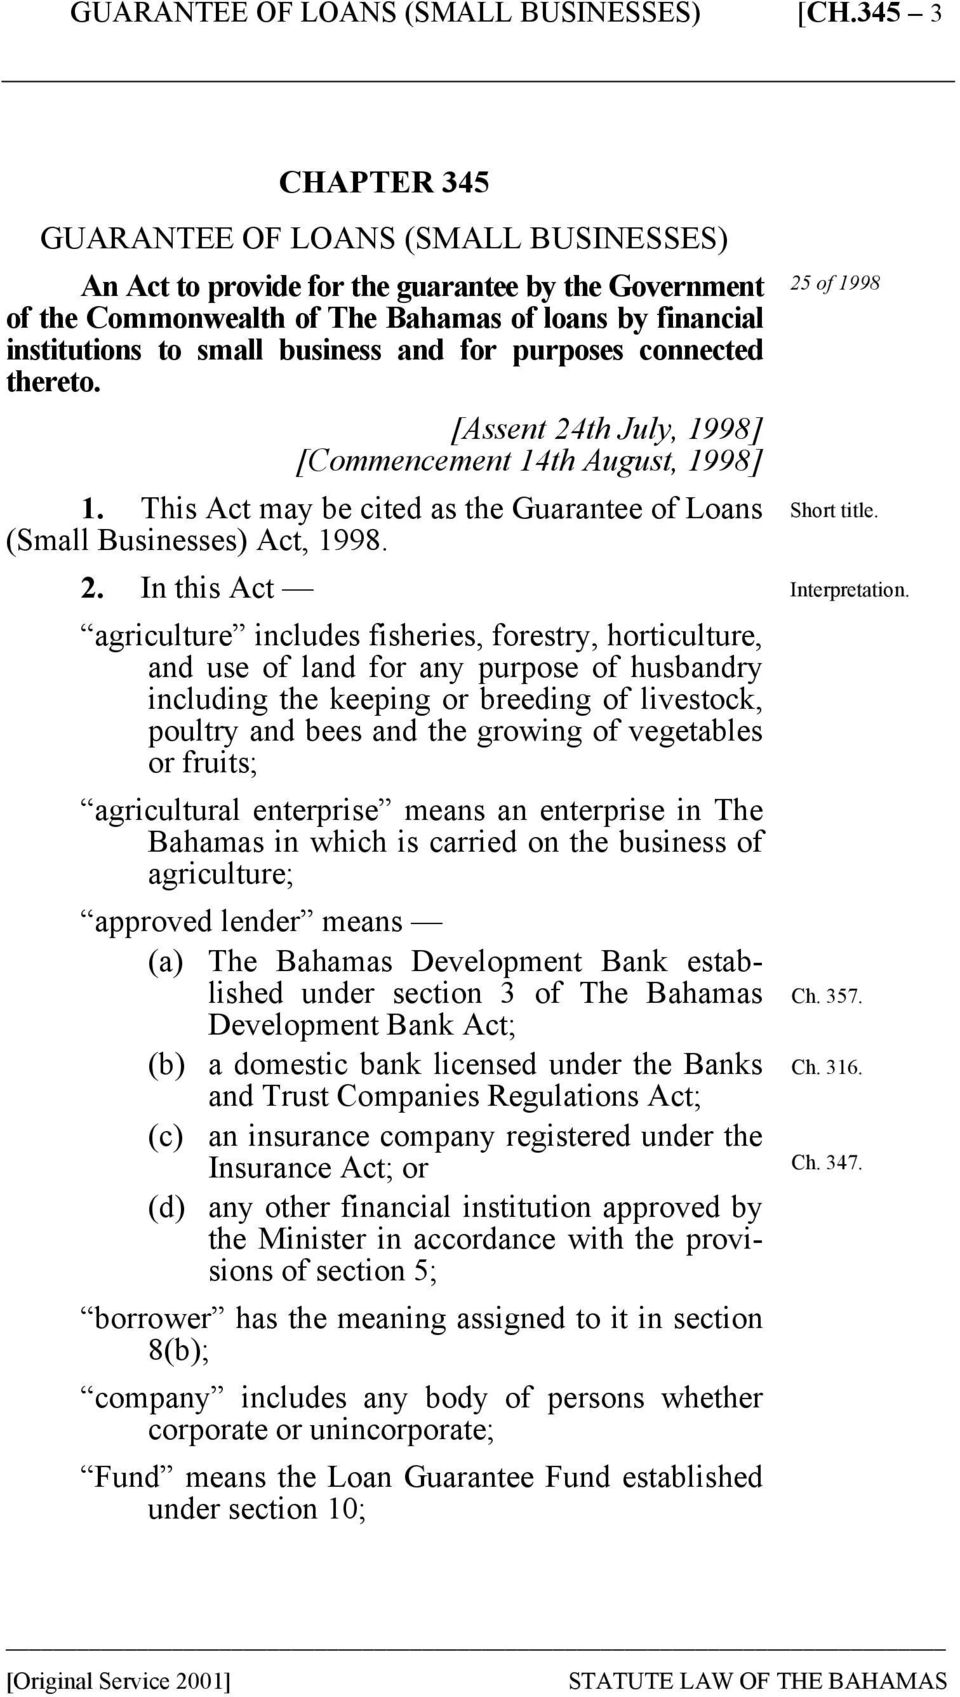 th July, 1998] [Commencement 14th August, 1998] 1. This Act may be cited as the Guarantee of Loans (Small Businesses) Act, 1998. 2.